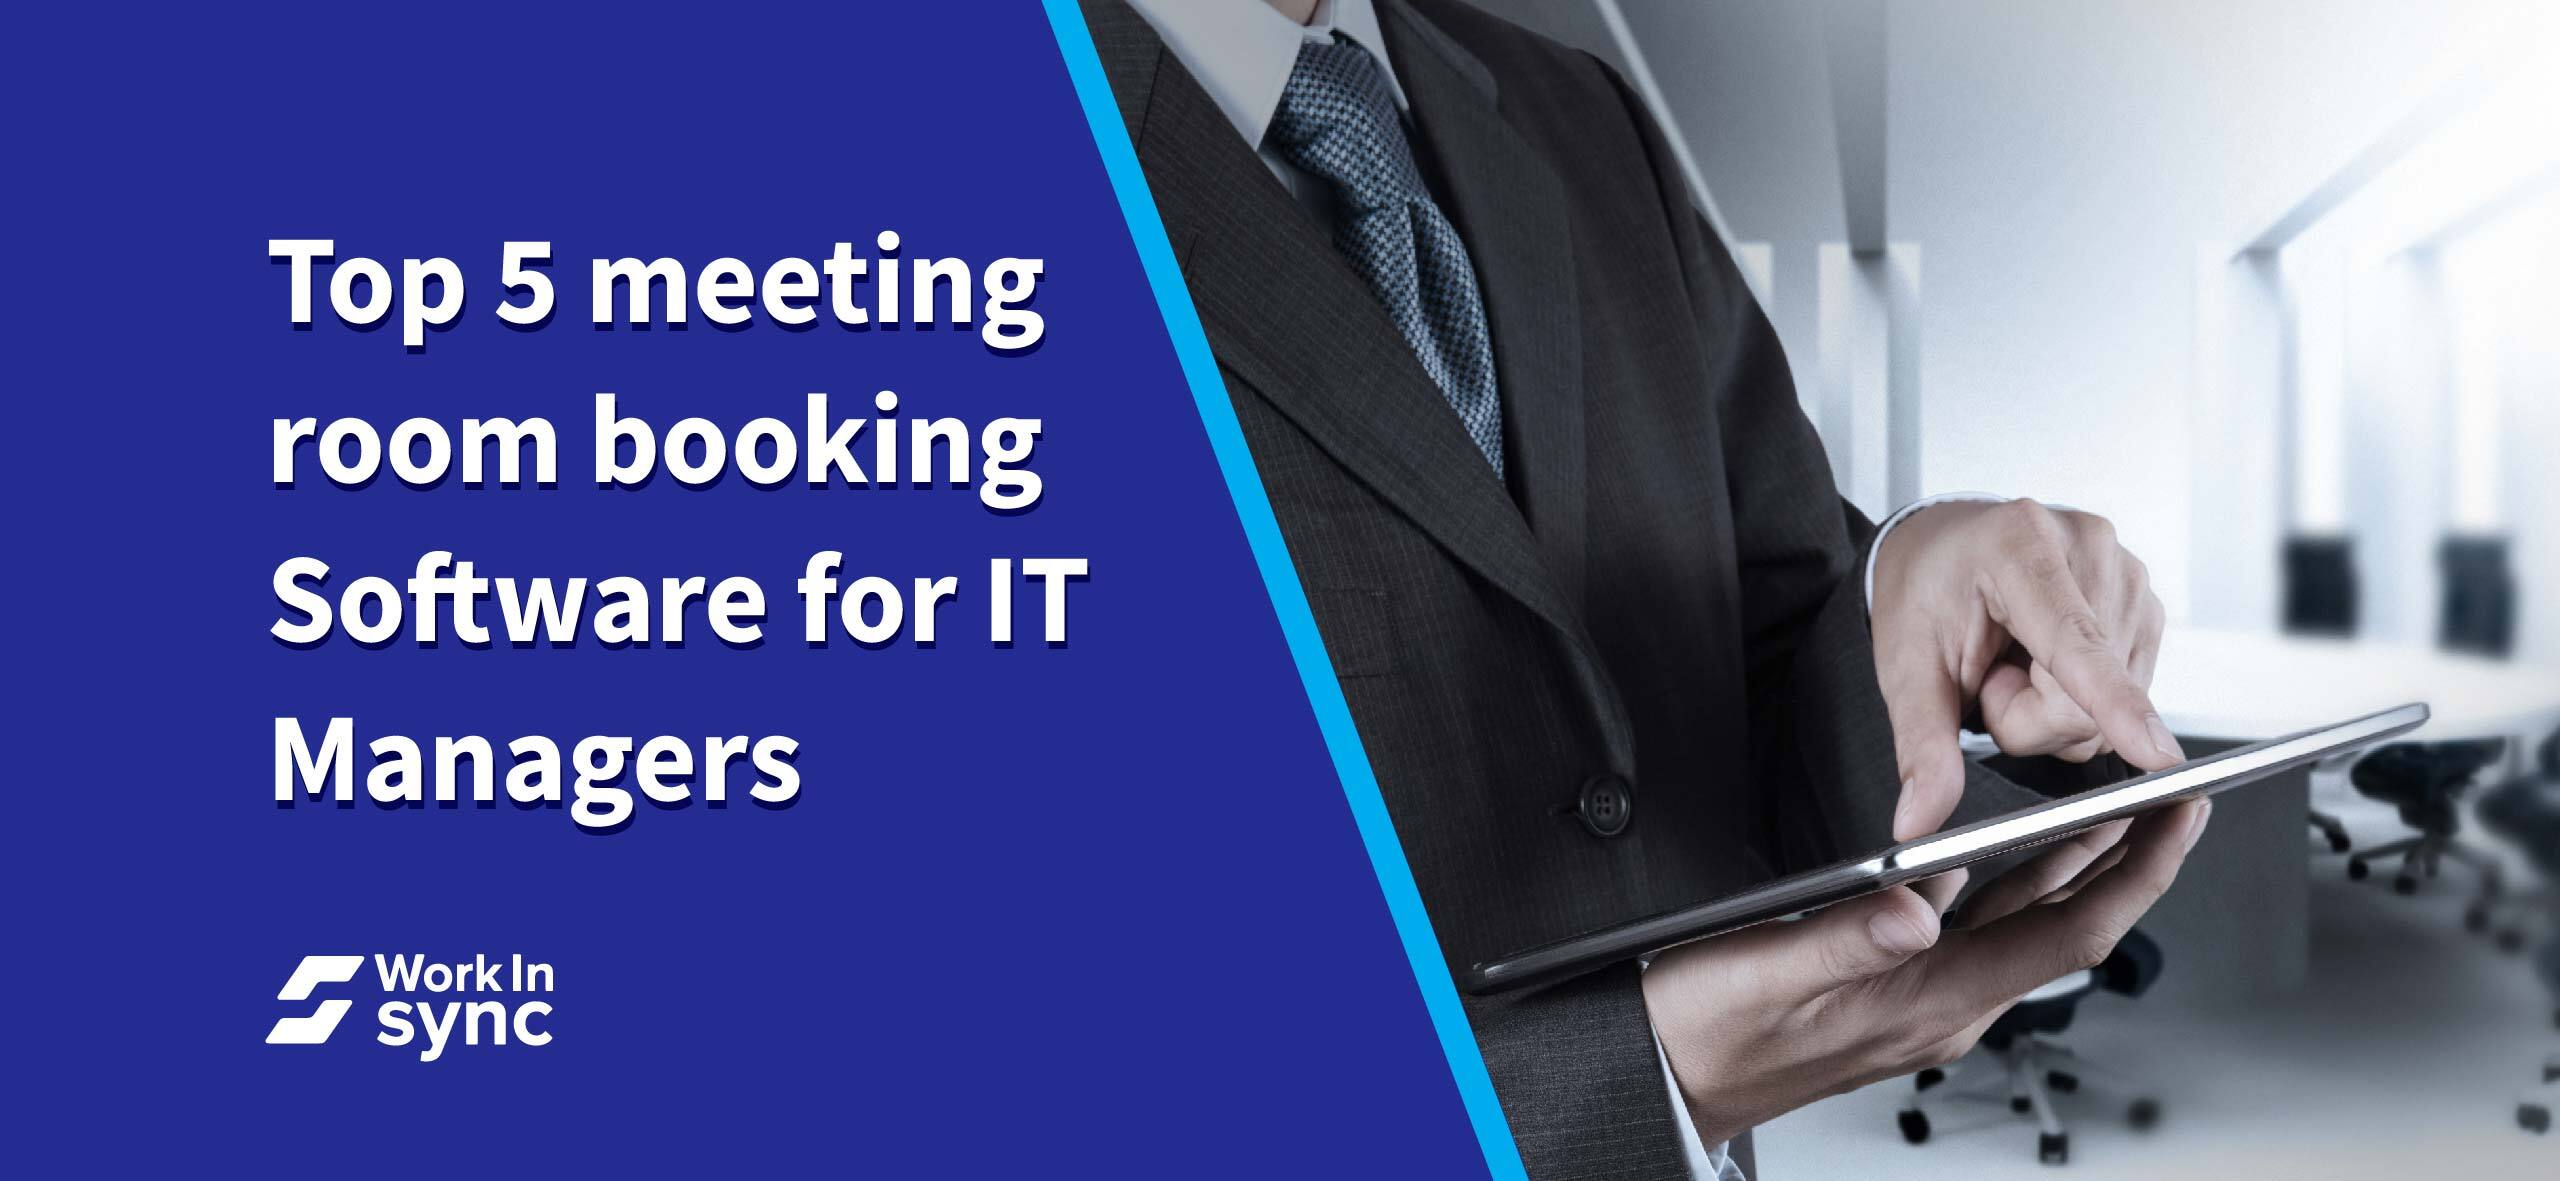 Top 5 Meeting Room Booking Software for IT Managers